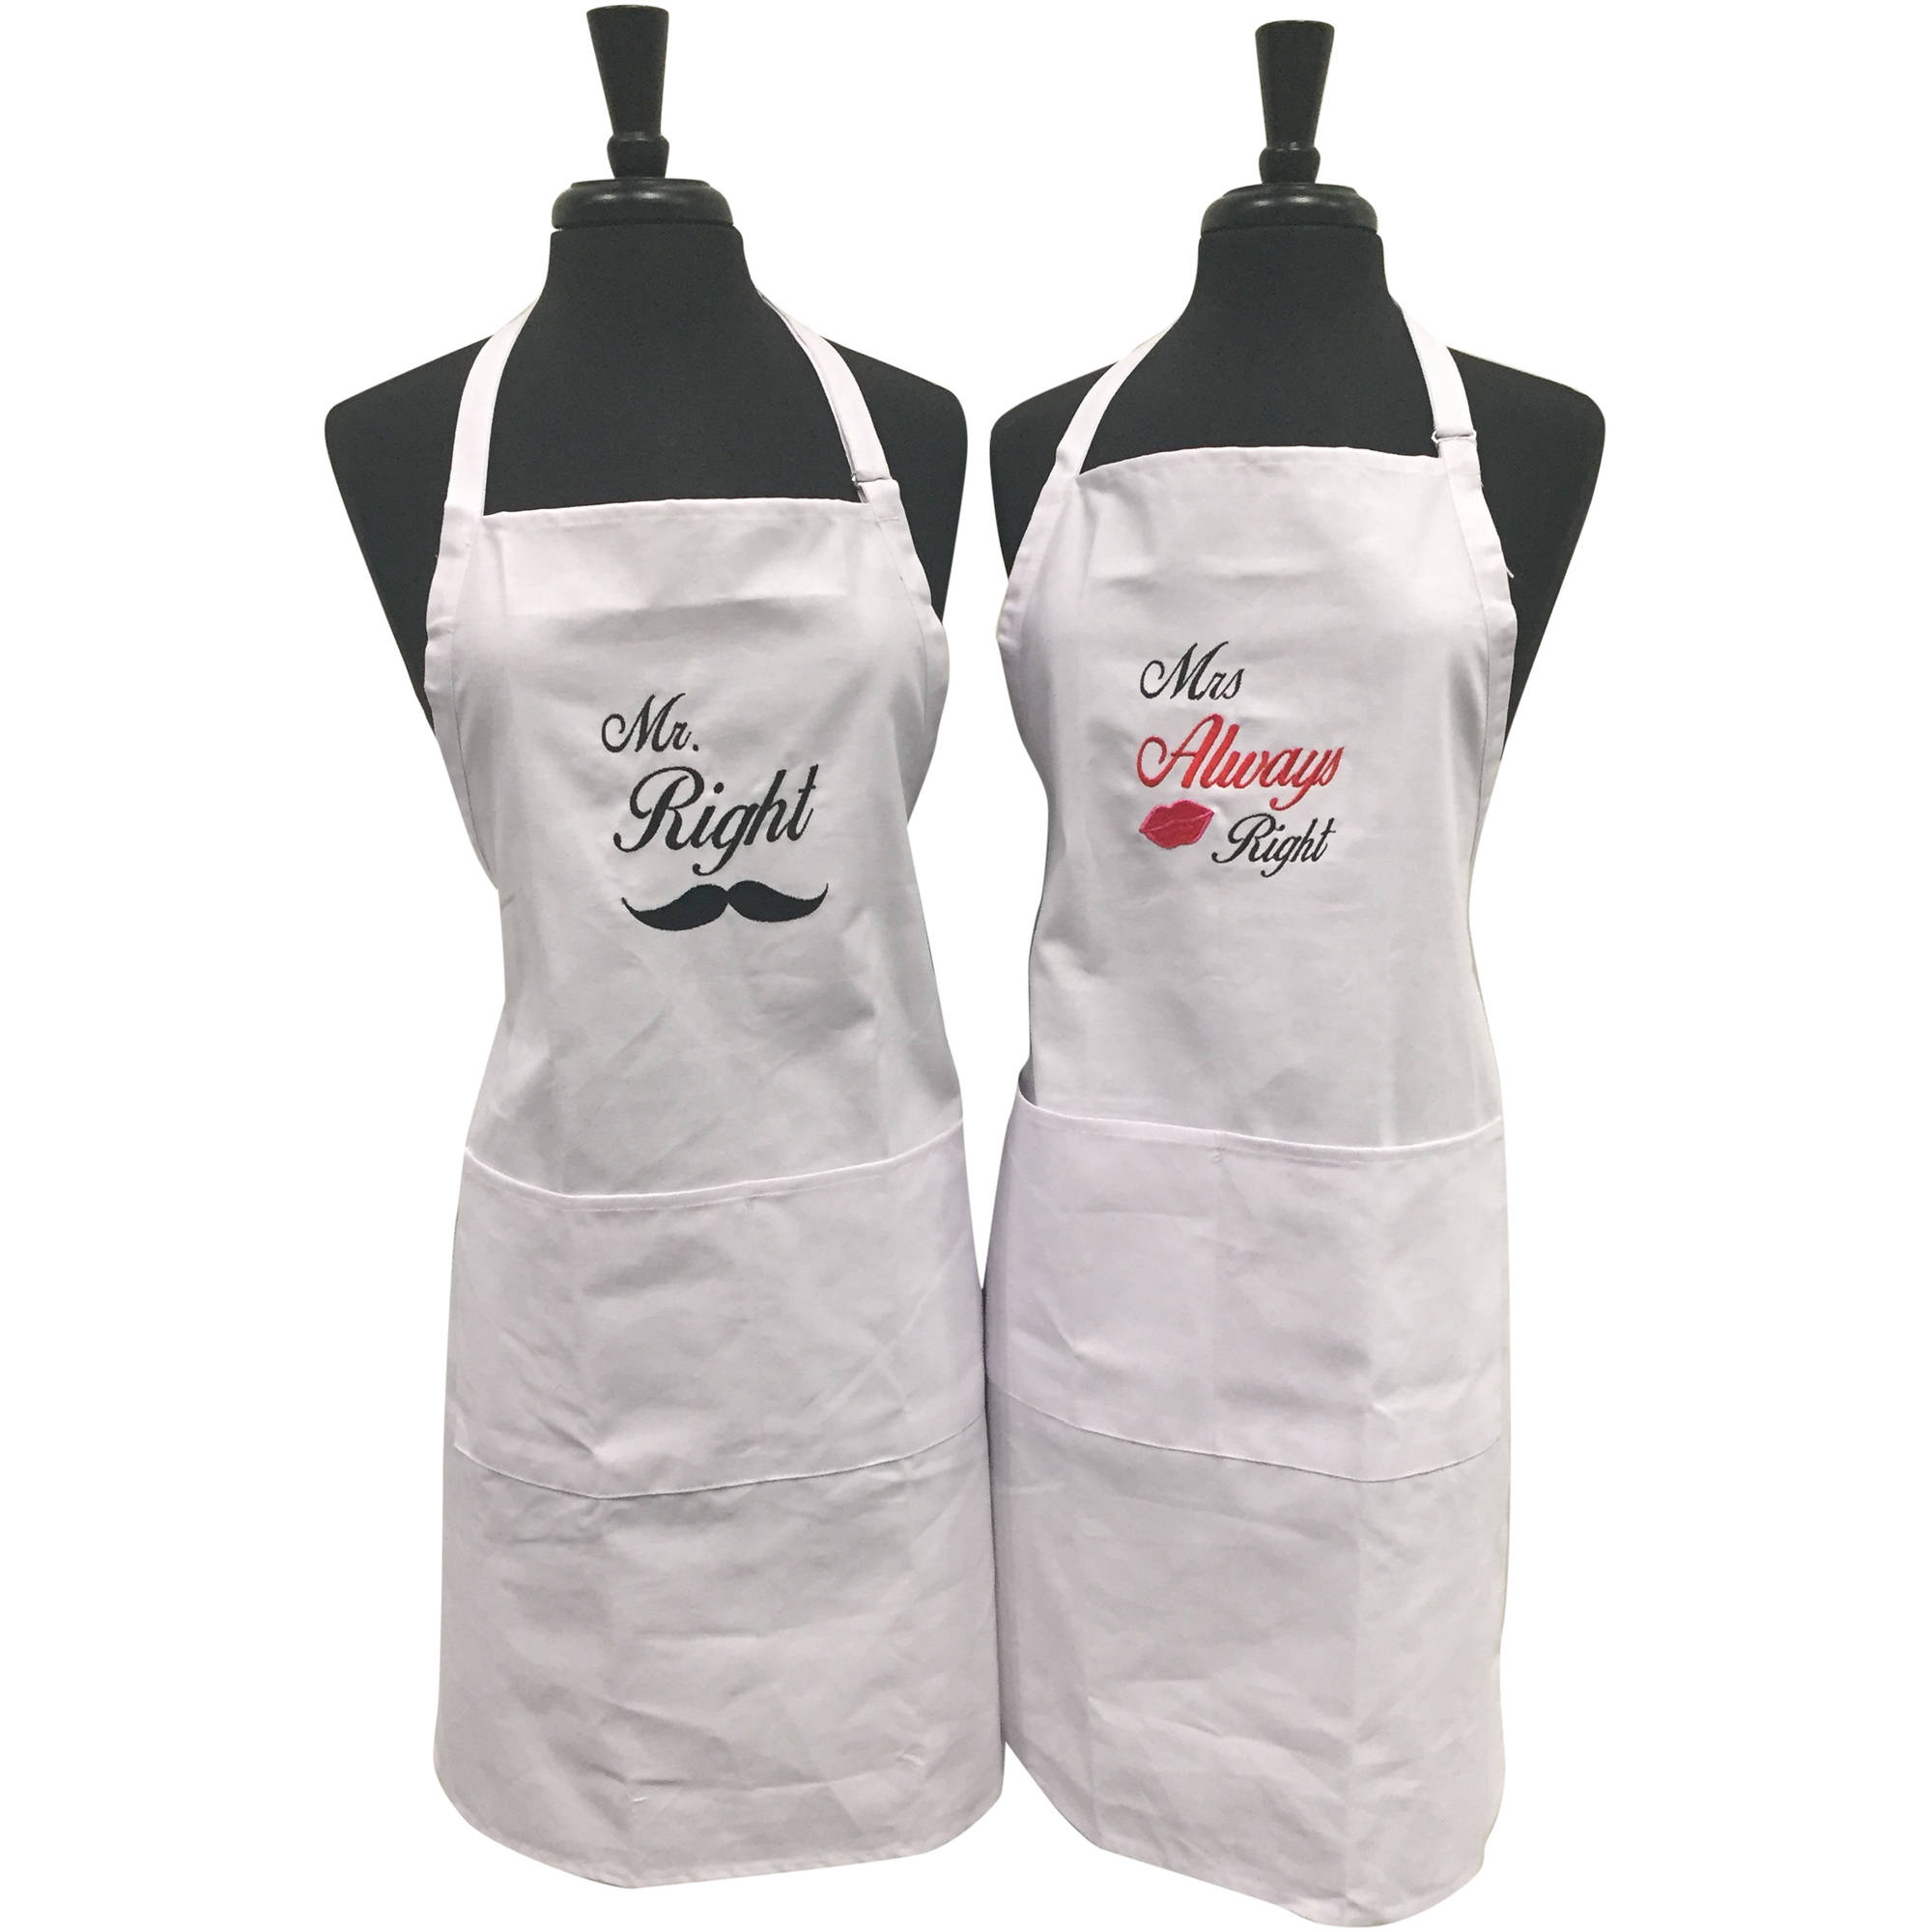 Mr. Right and Mrs. Always Right Embroidered Apron Set